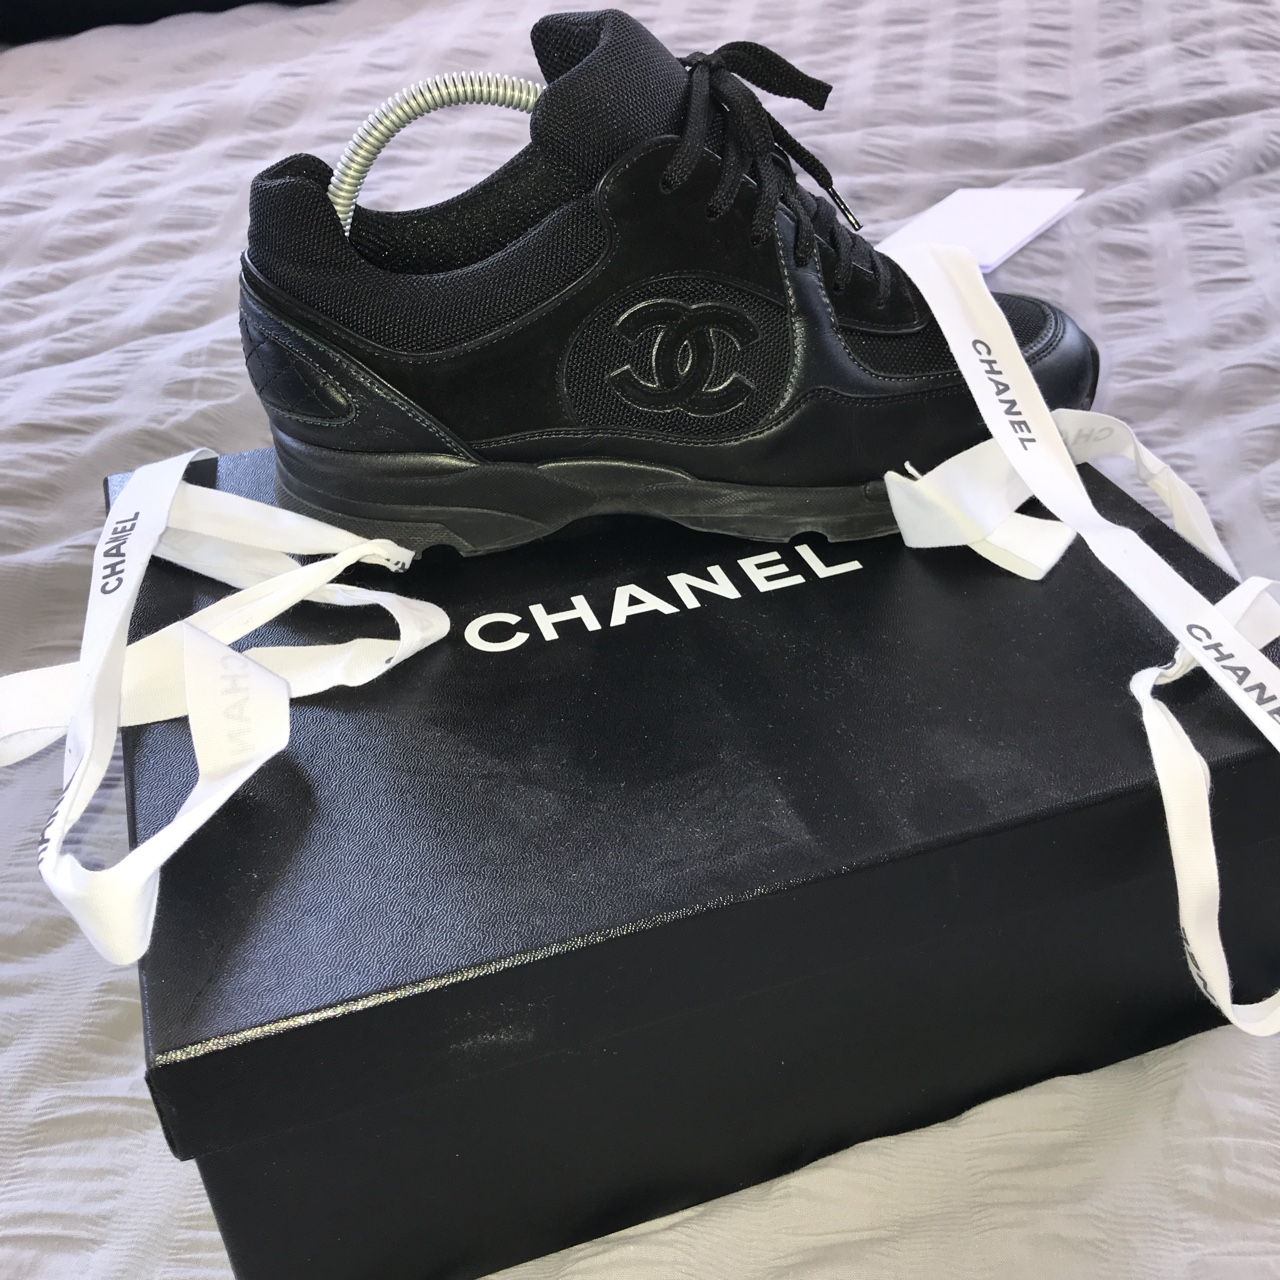 CHANEL trainers bought from selfridges